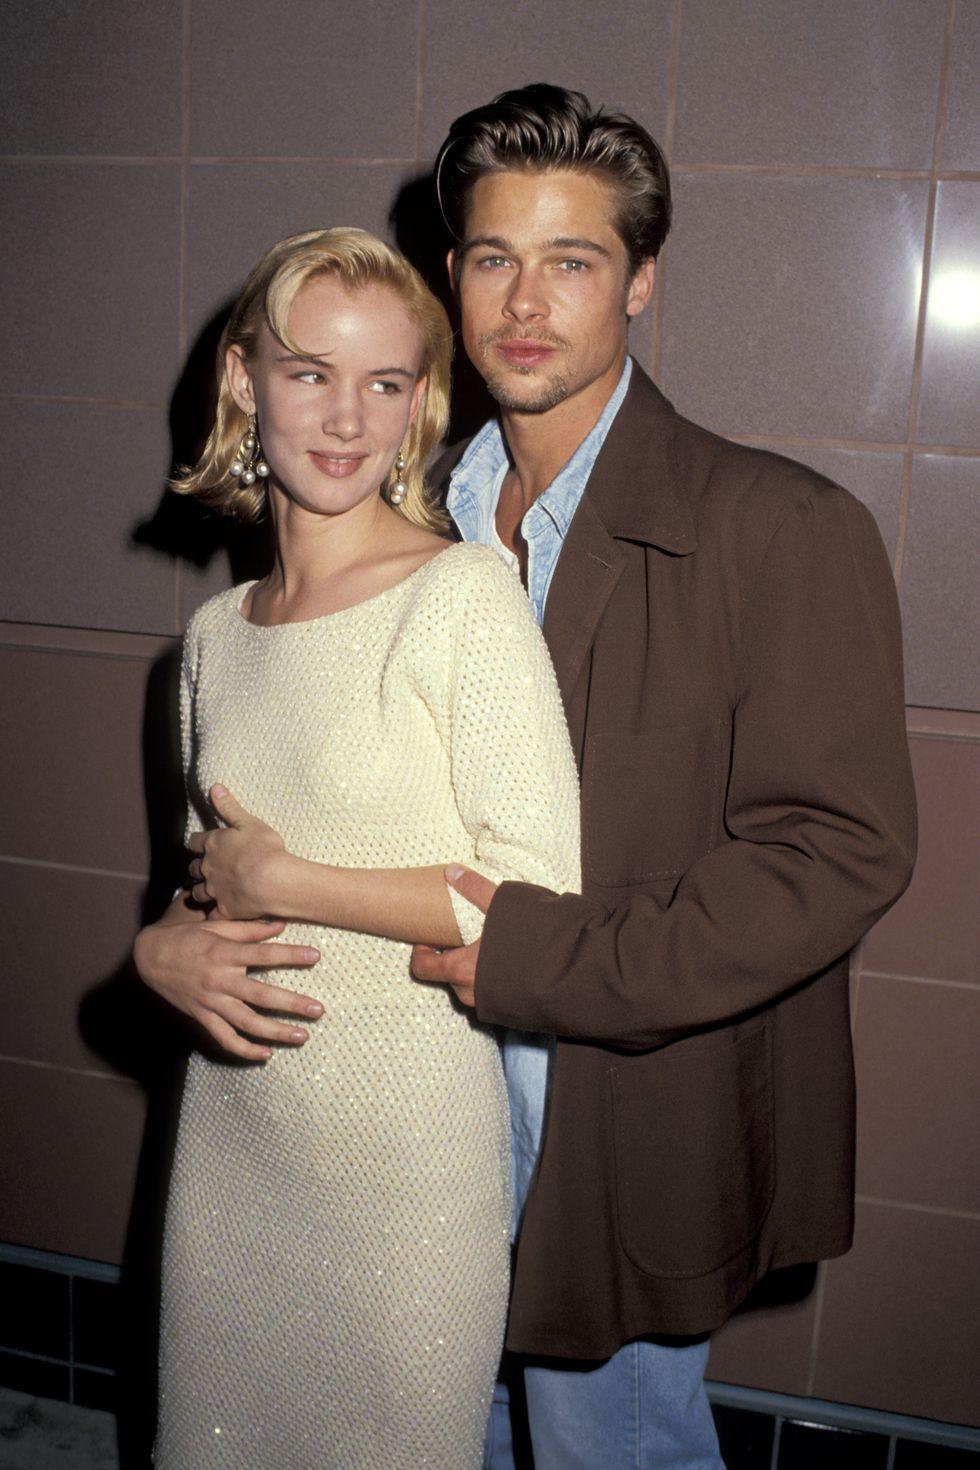 1991: Another Love Pitt gets close to then-girlfriend Juliette Lewis at the Thelma and Louise premiere. The couple began dating when he was 27 and she was 17 and were together for three years until they split in 1993.